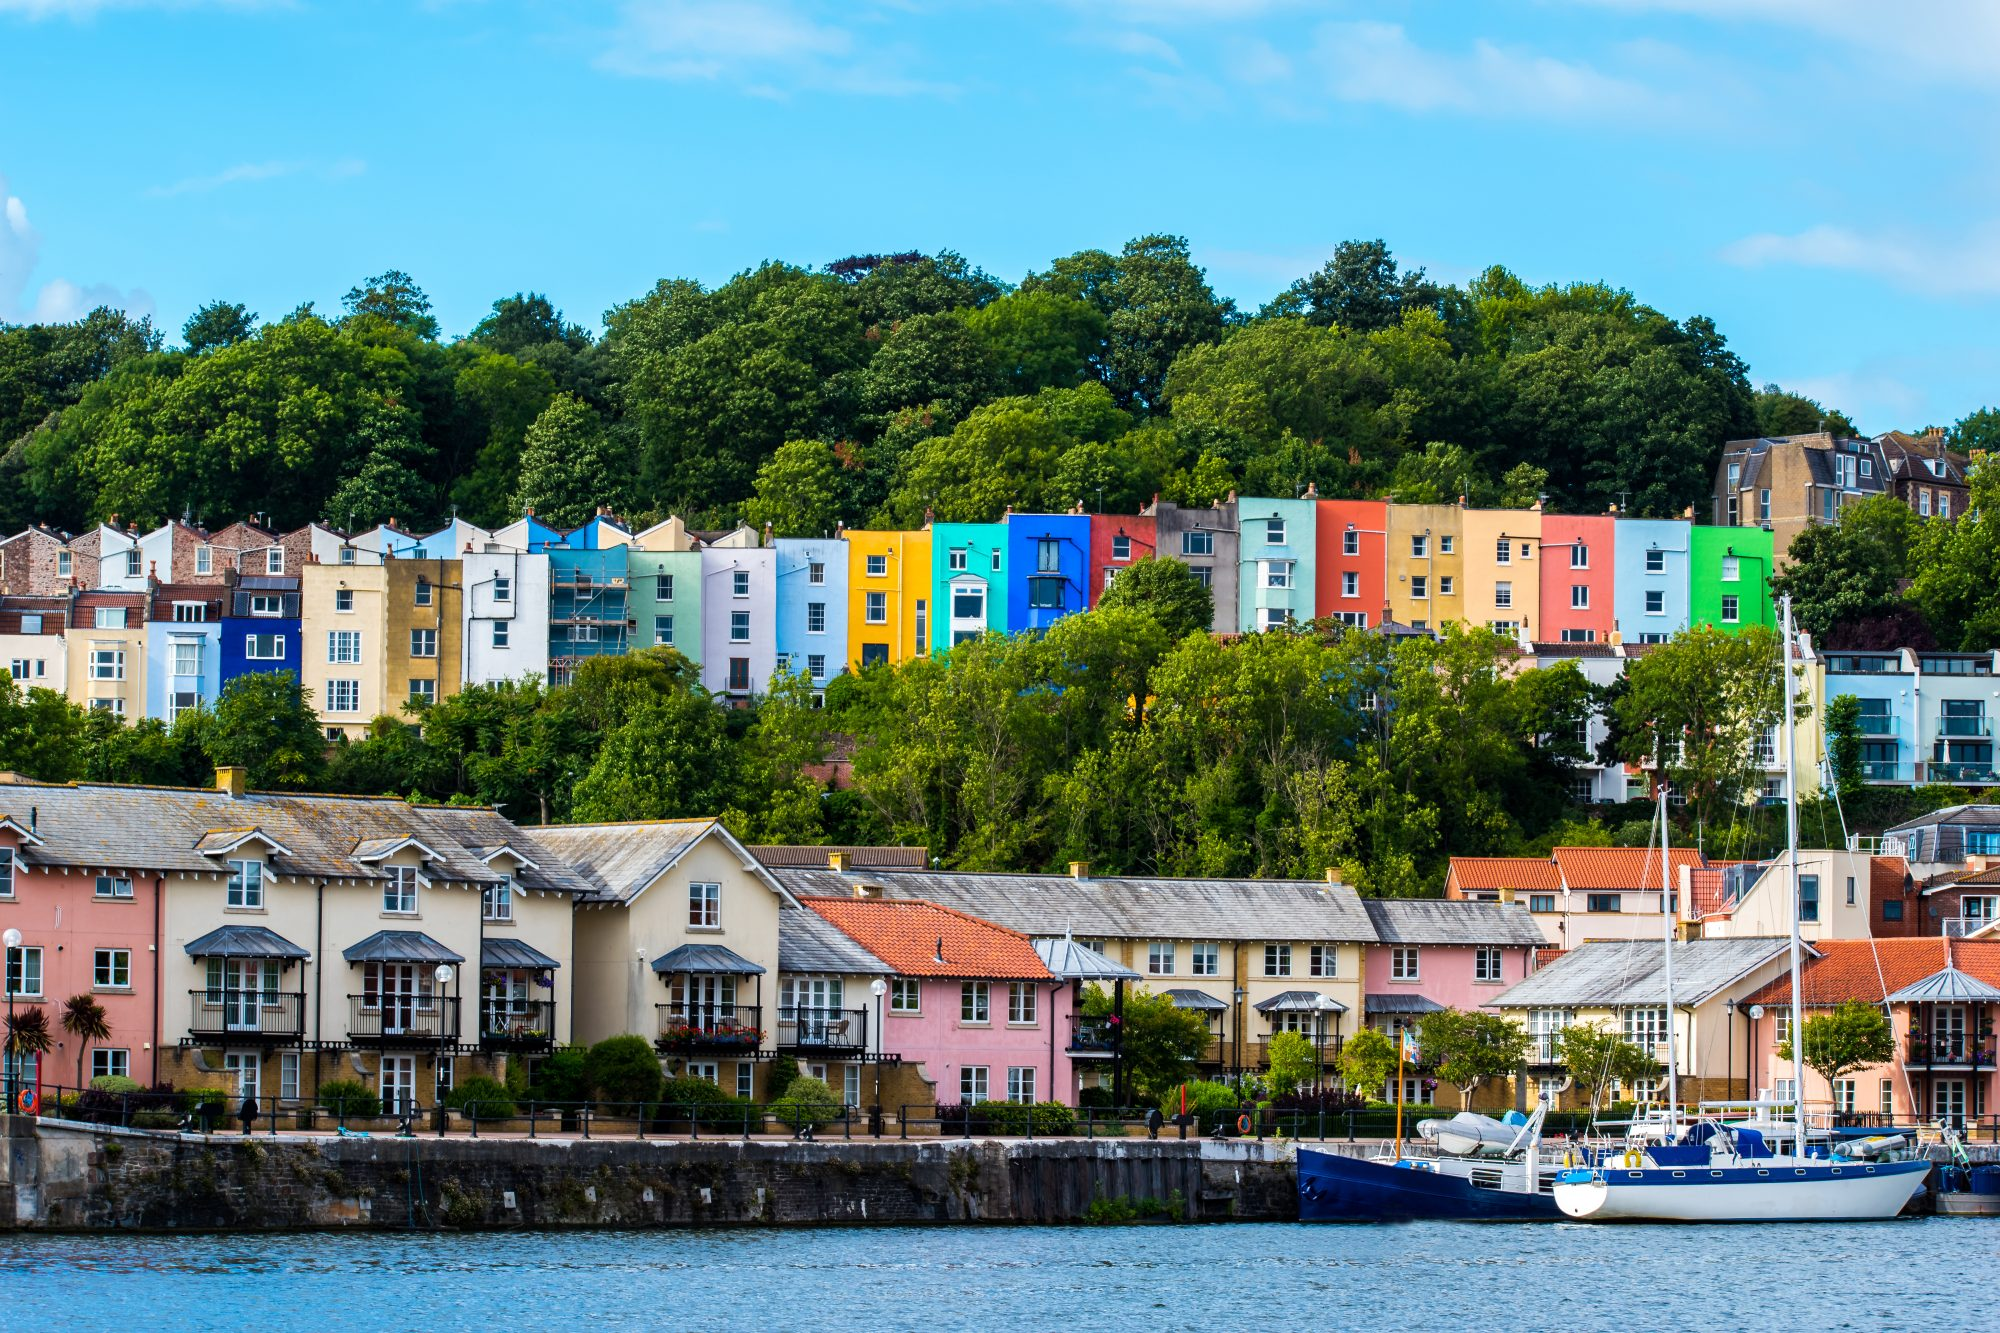 Colourful houses along the river in Bristol